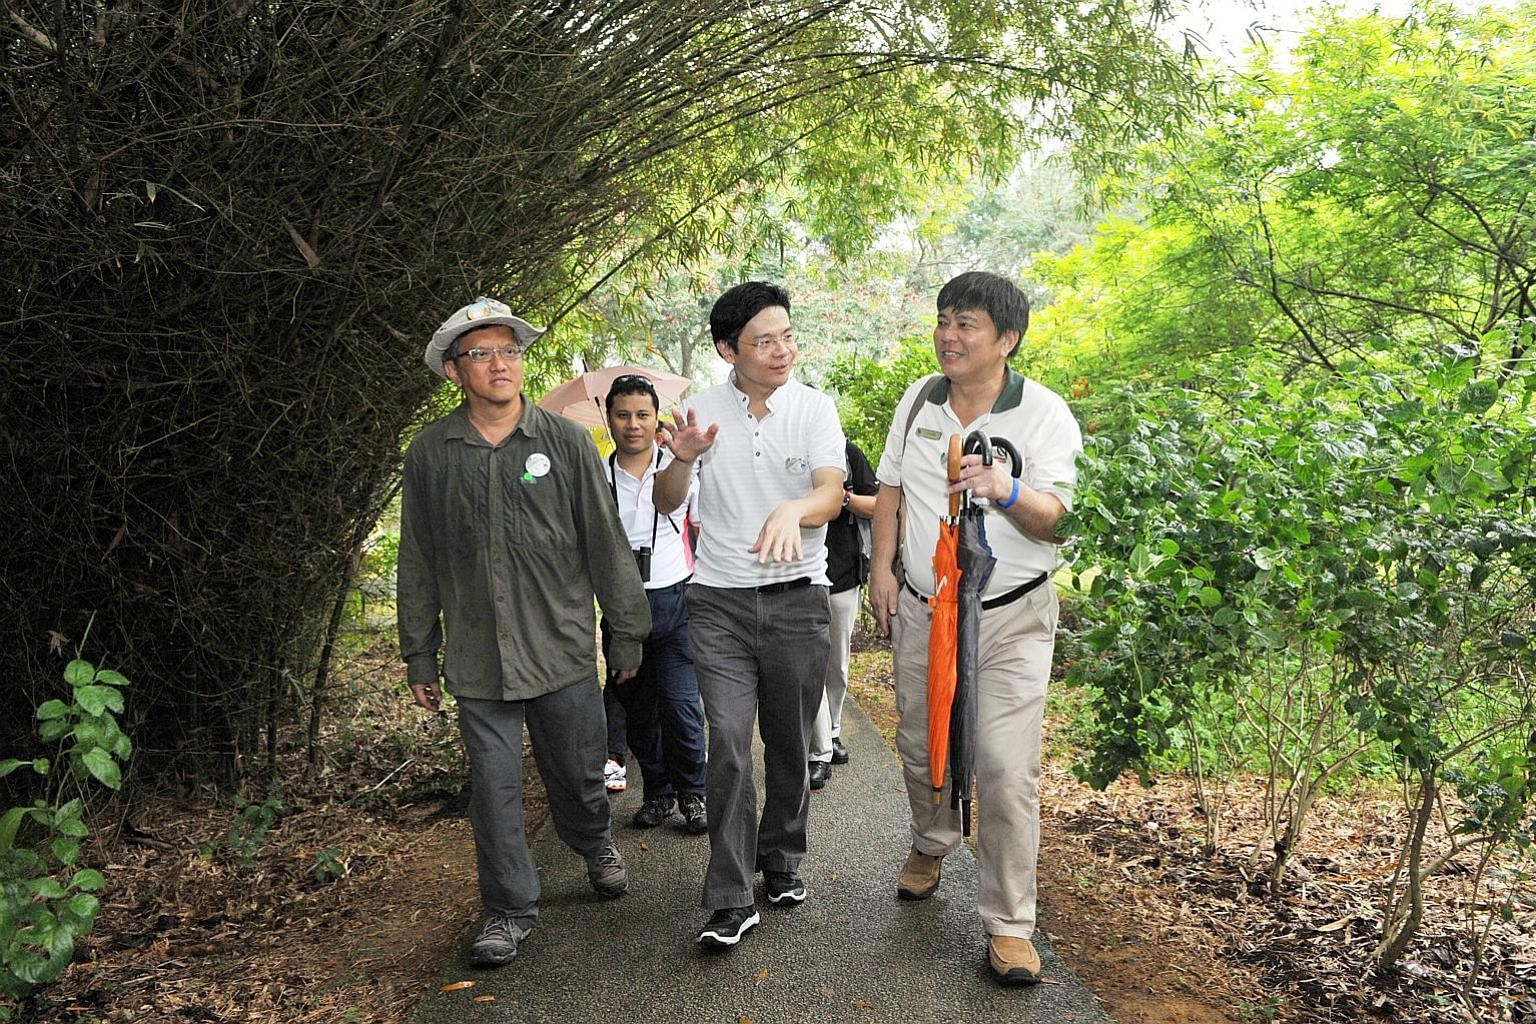 Mr Lawrence Wong (centre) with (from far left) ButterflyCircle founder Khew Sin Khoon, Senior Minister of State for National Development Desmond Lee (behind) and NParks' director for Pulau Ubin Robert Teo Chee Hin on a butterfly trail on Pulau Ubin.